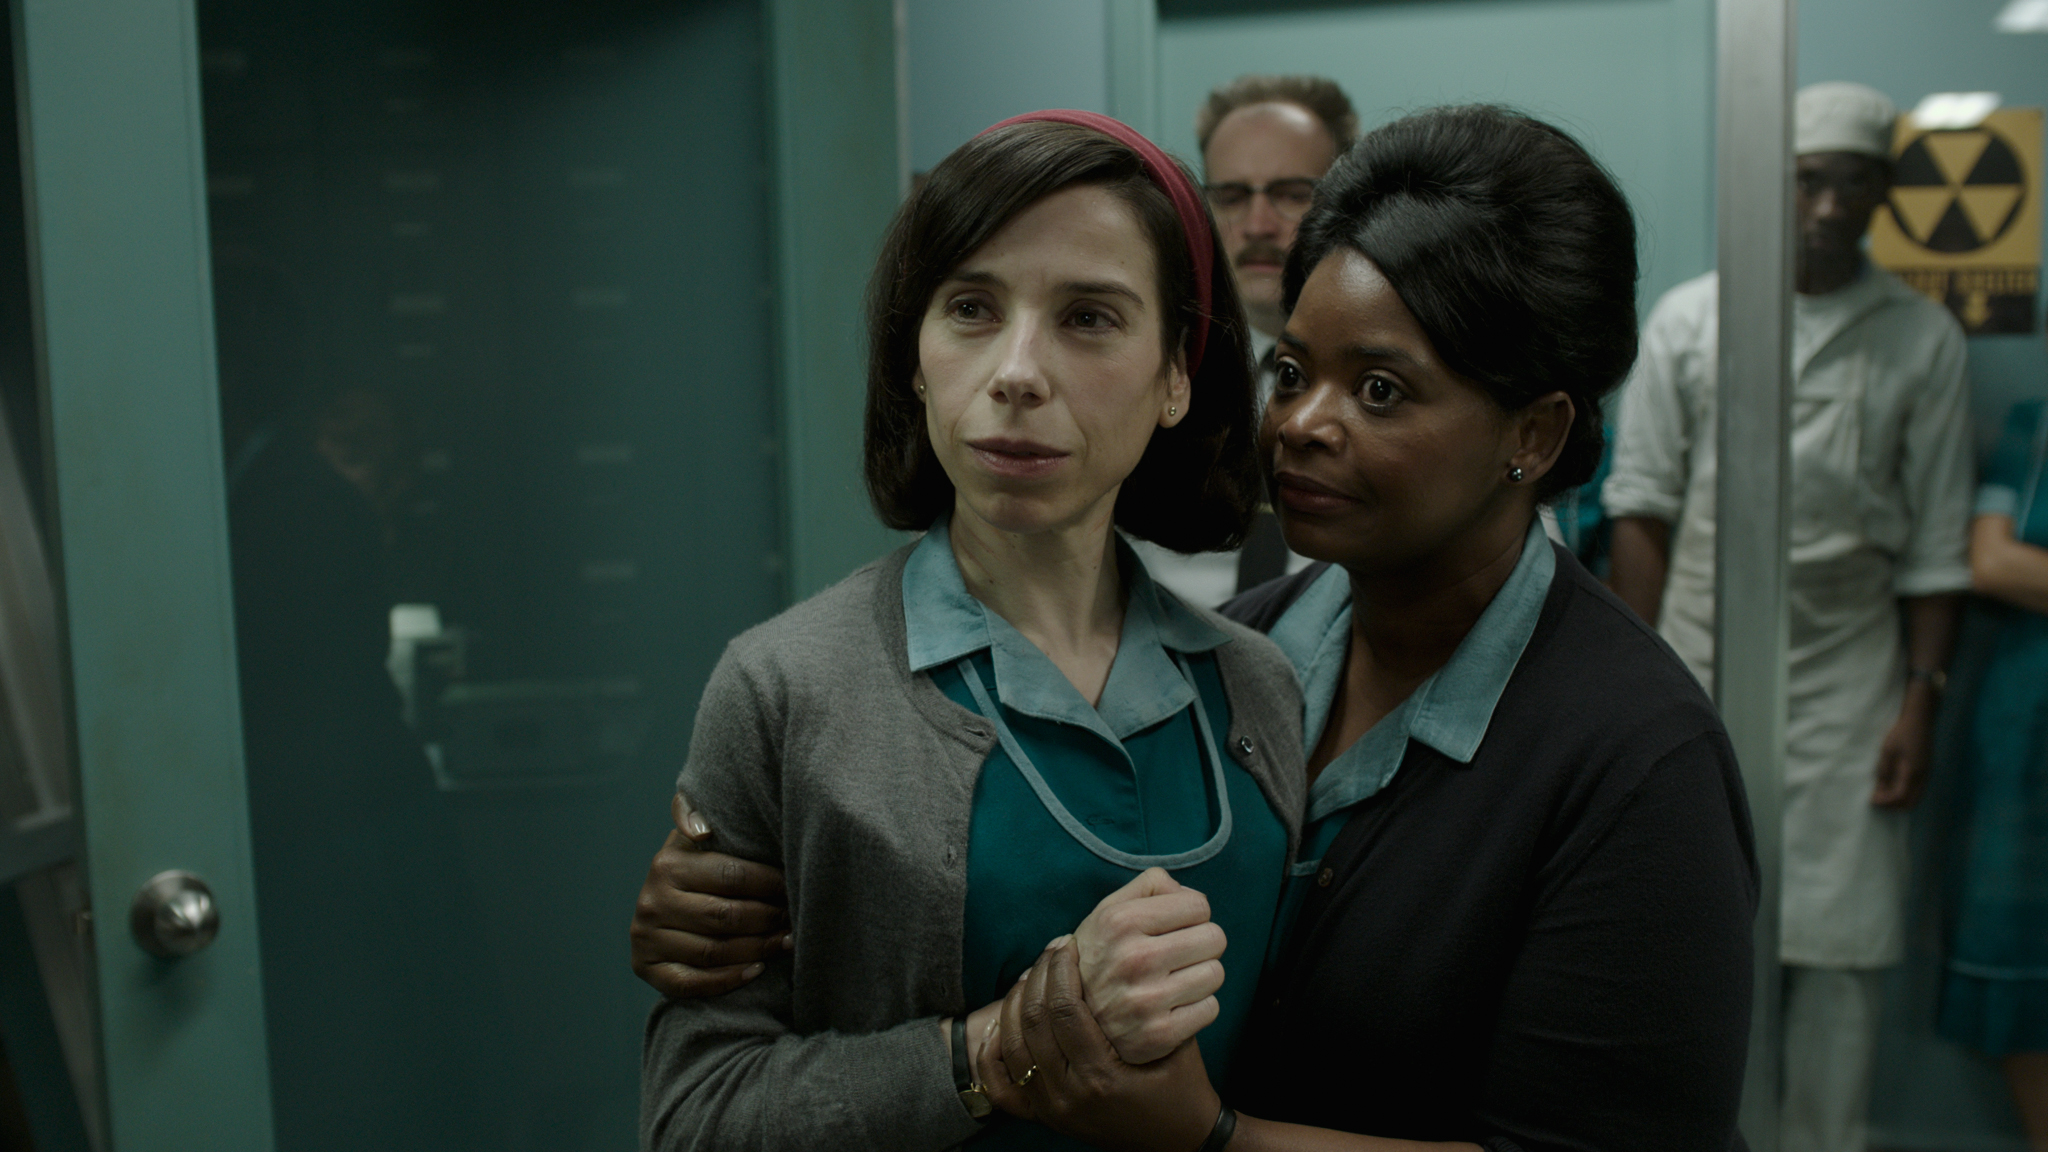 Sally Hawkins and Octavia Spencer play janitors at a secret government facility. (Fox Searchlight)